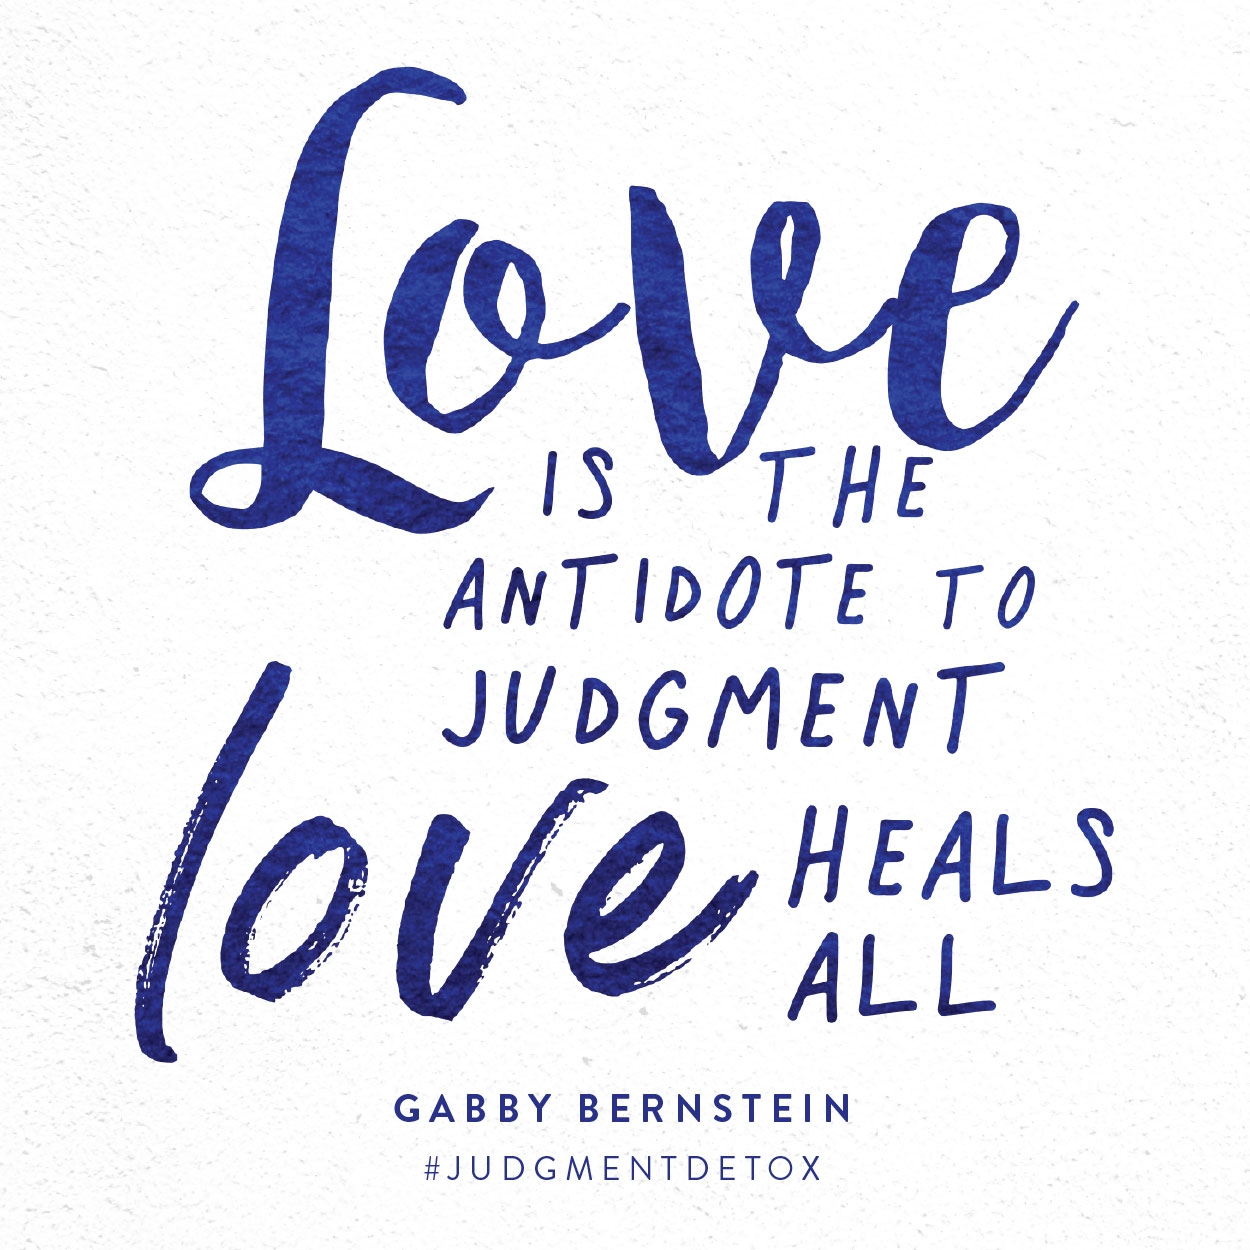 Love is the antidote to judgment. Love heals all. | Judgment Detox by Gabby Bernstein